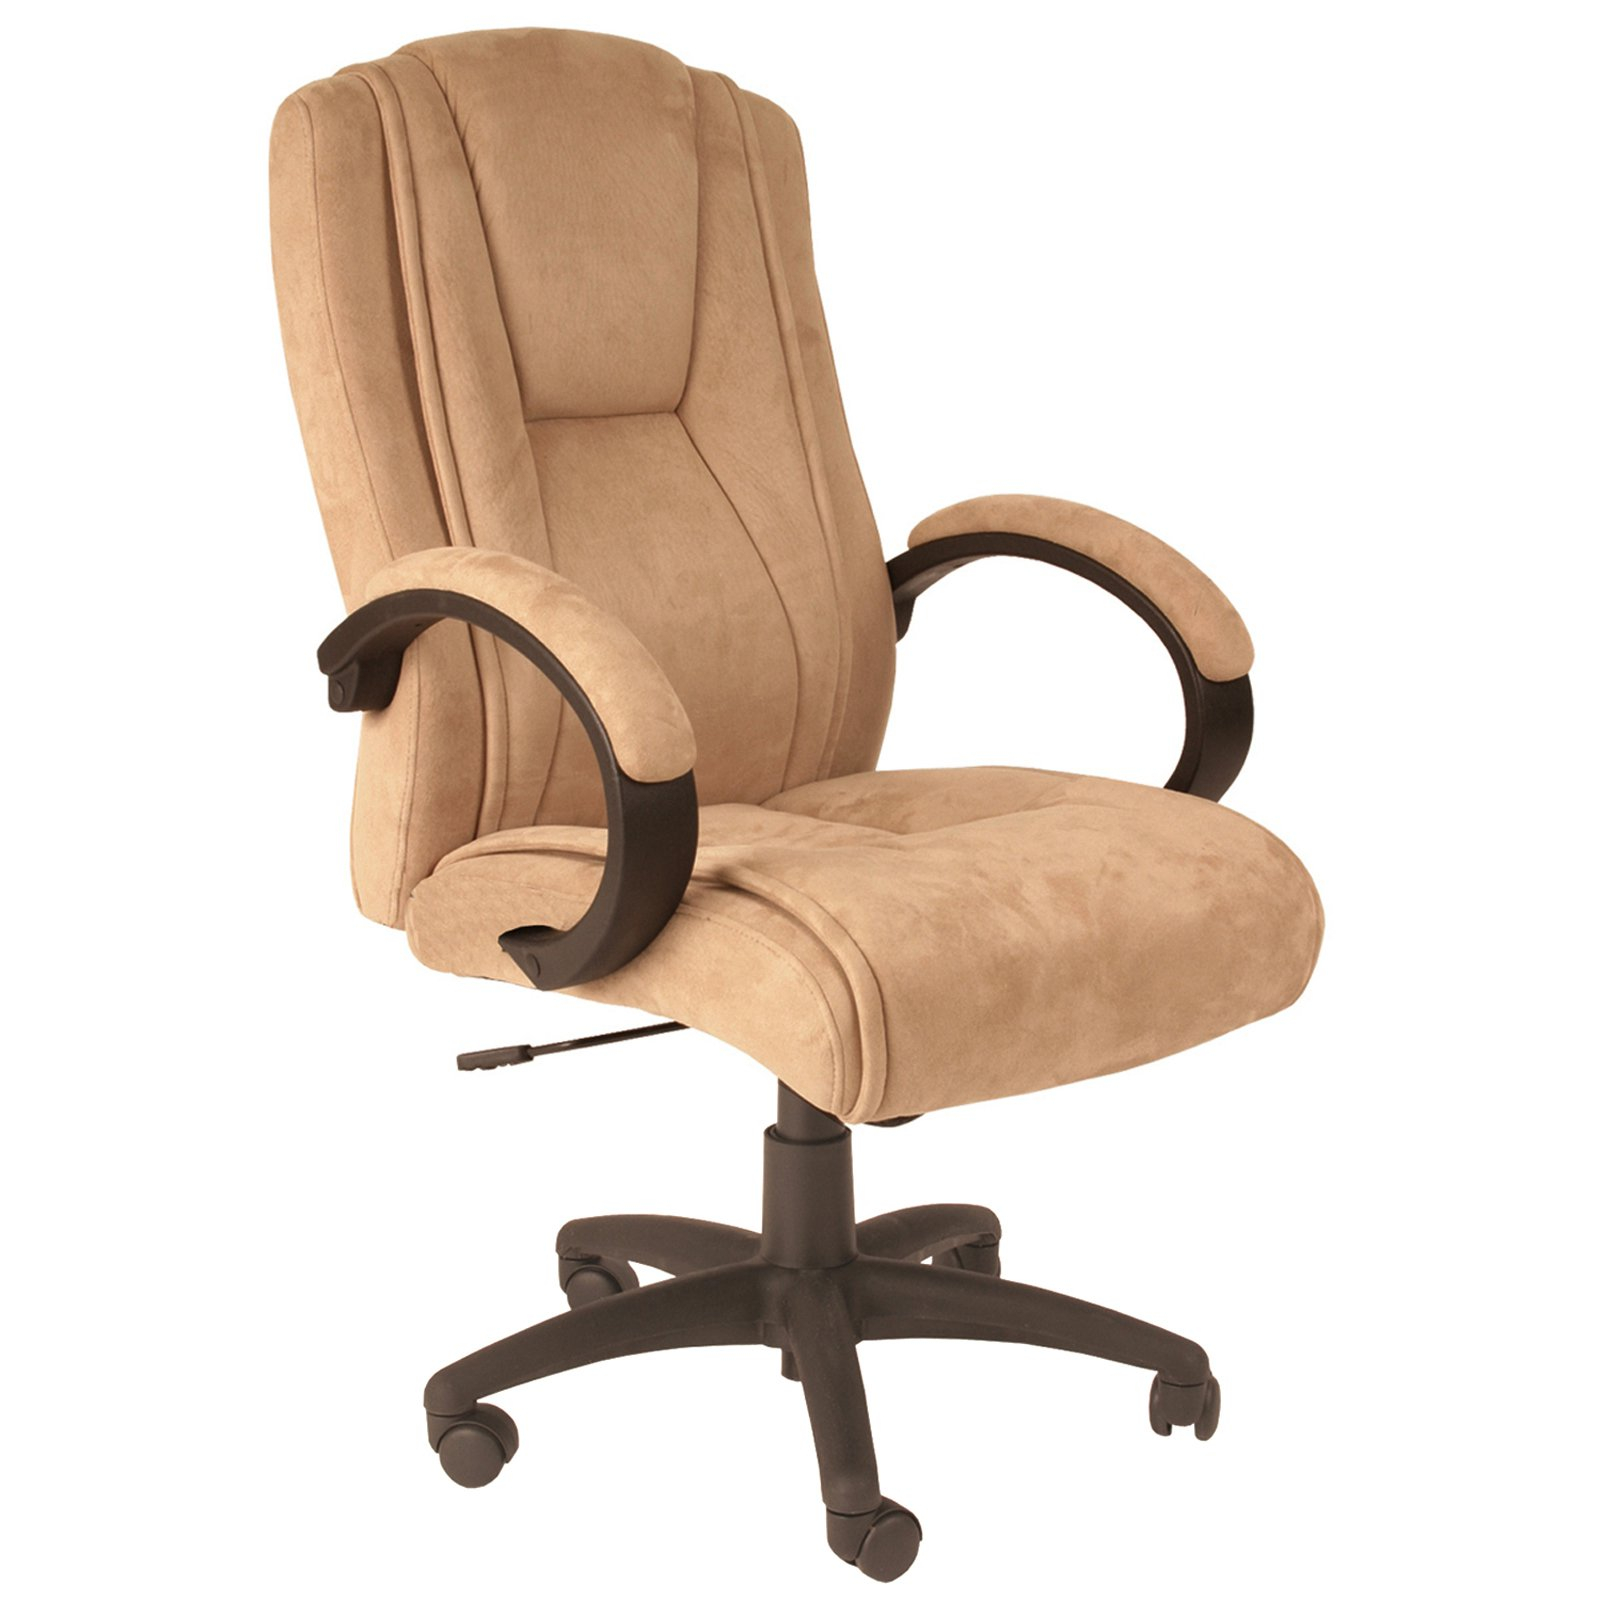 Serta Microfiber Executive Office Chair Light Beige Hayneedle intended for measurements 1600 X 1600